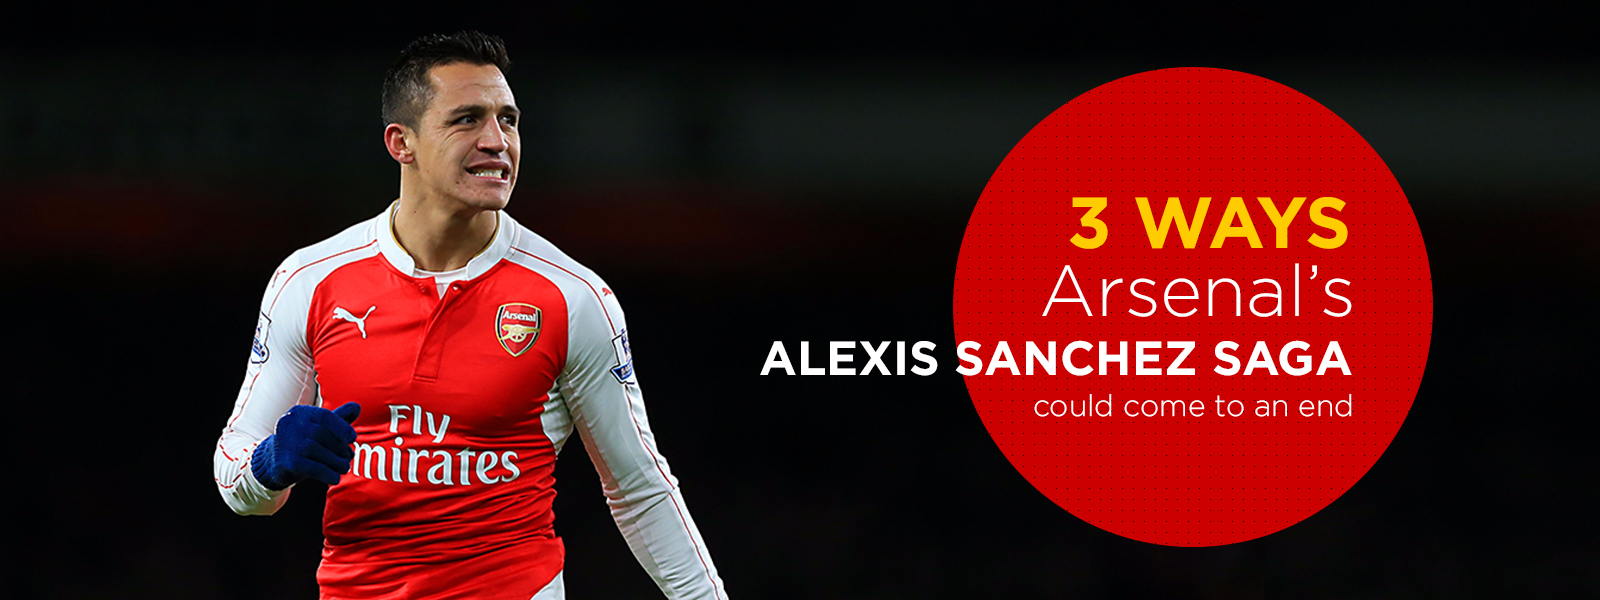 3 ways Arsenal's Alexis Sanchez saga could come to an end